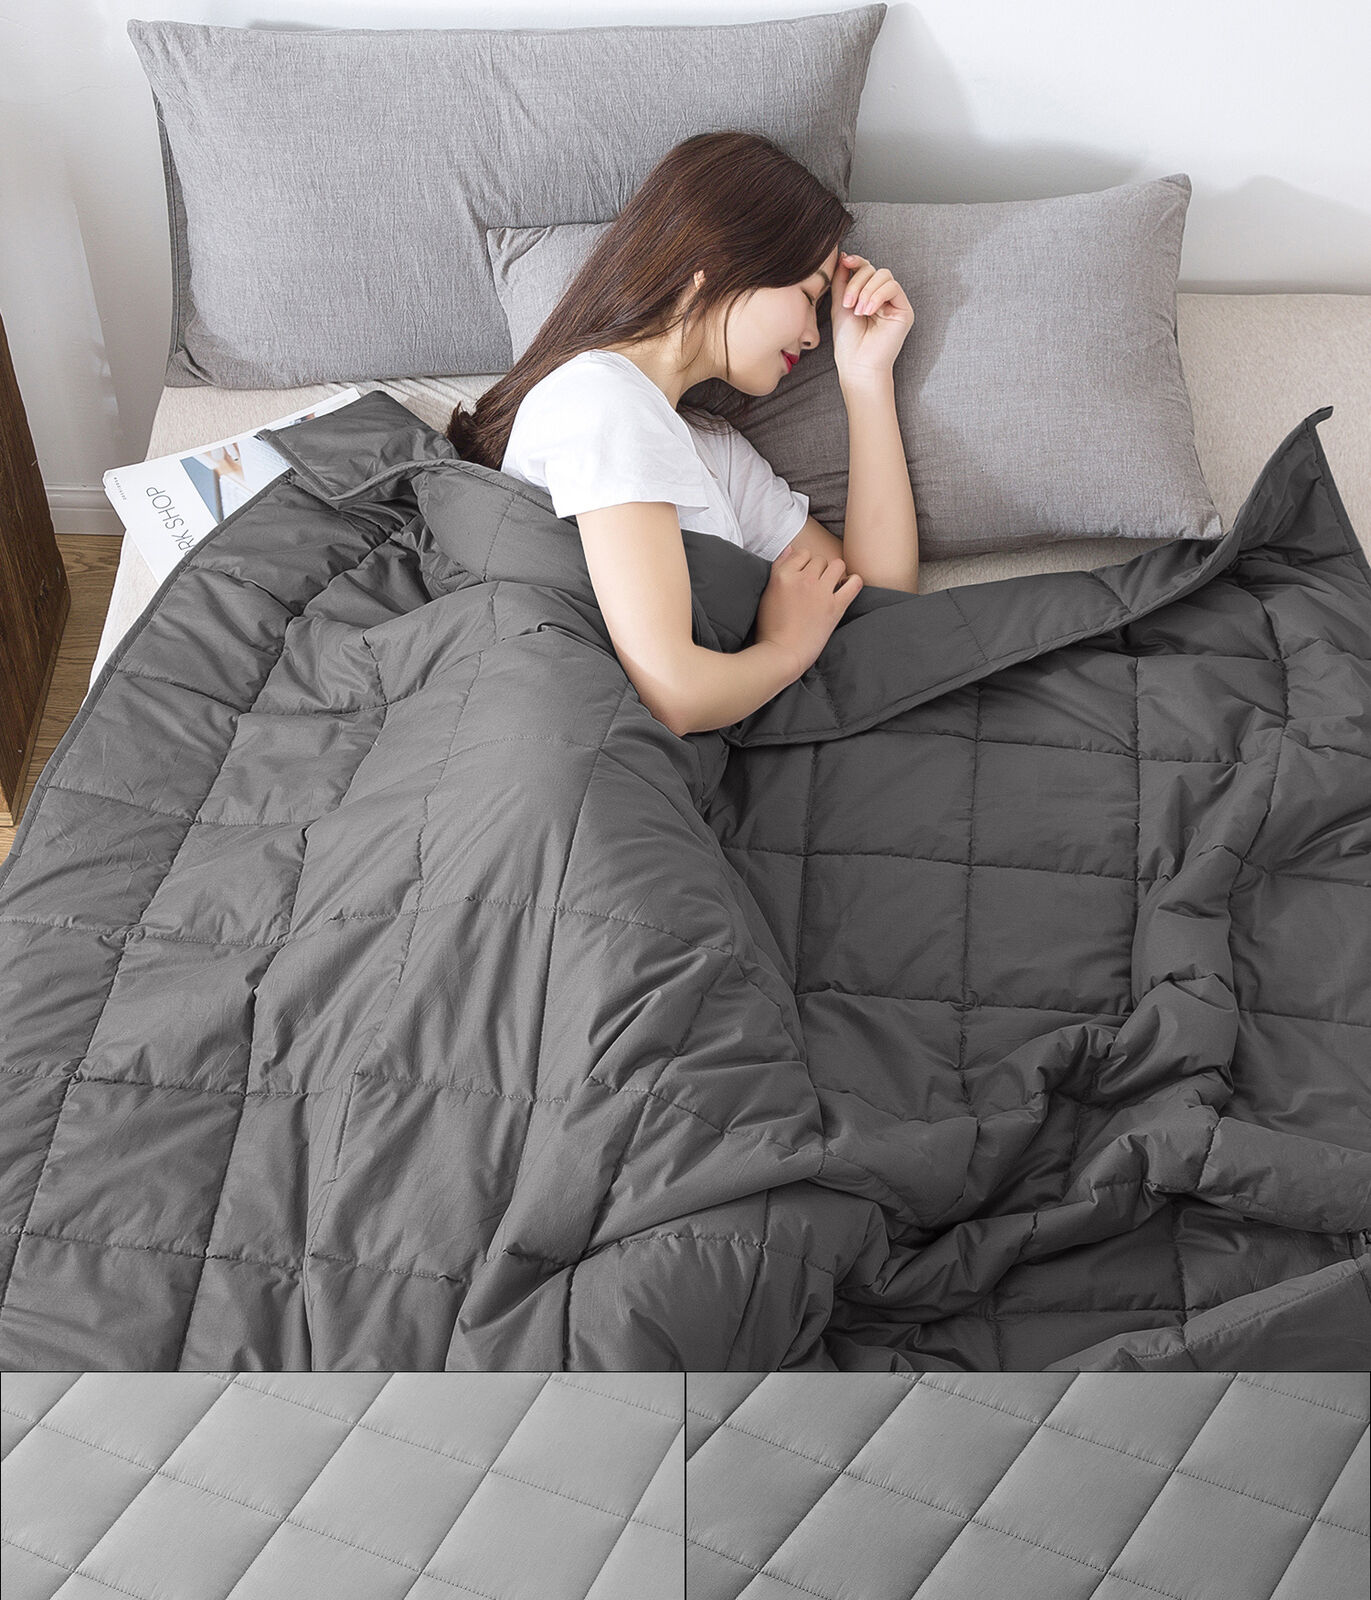 Stress rotucing Weighted Blanket 12lbs, 15lbs, 20lbs Twin, Full Queen